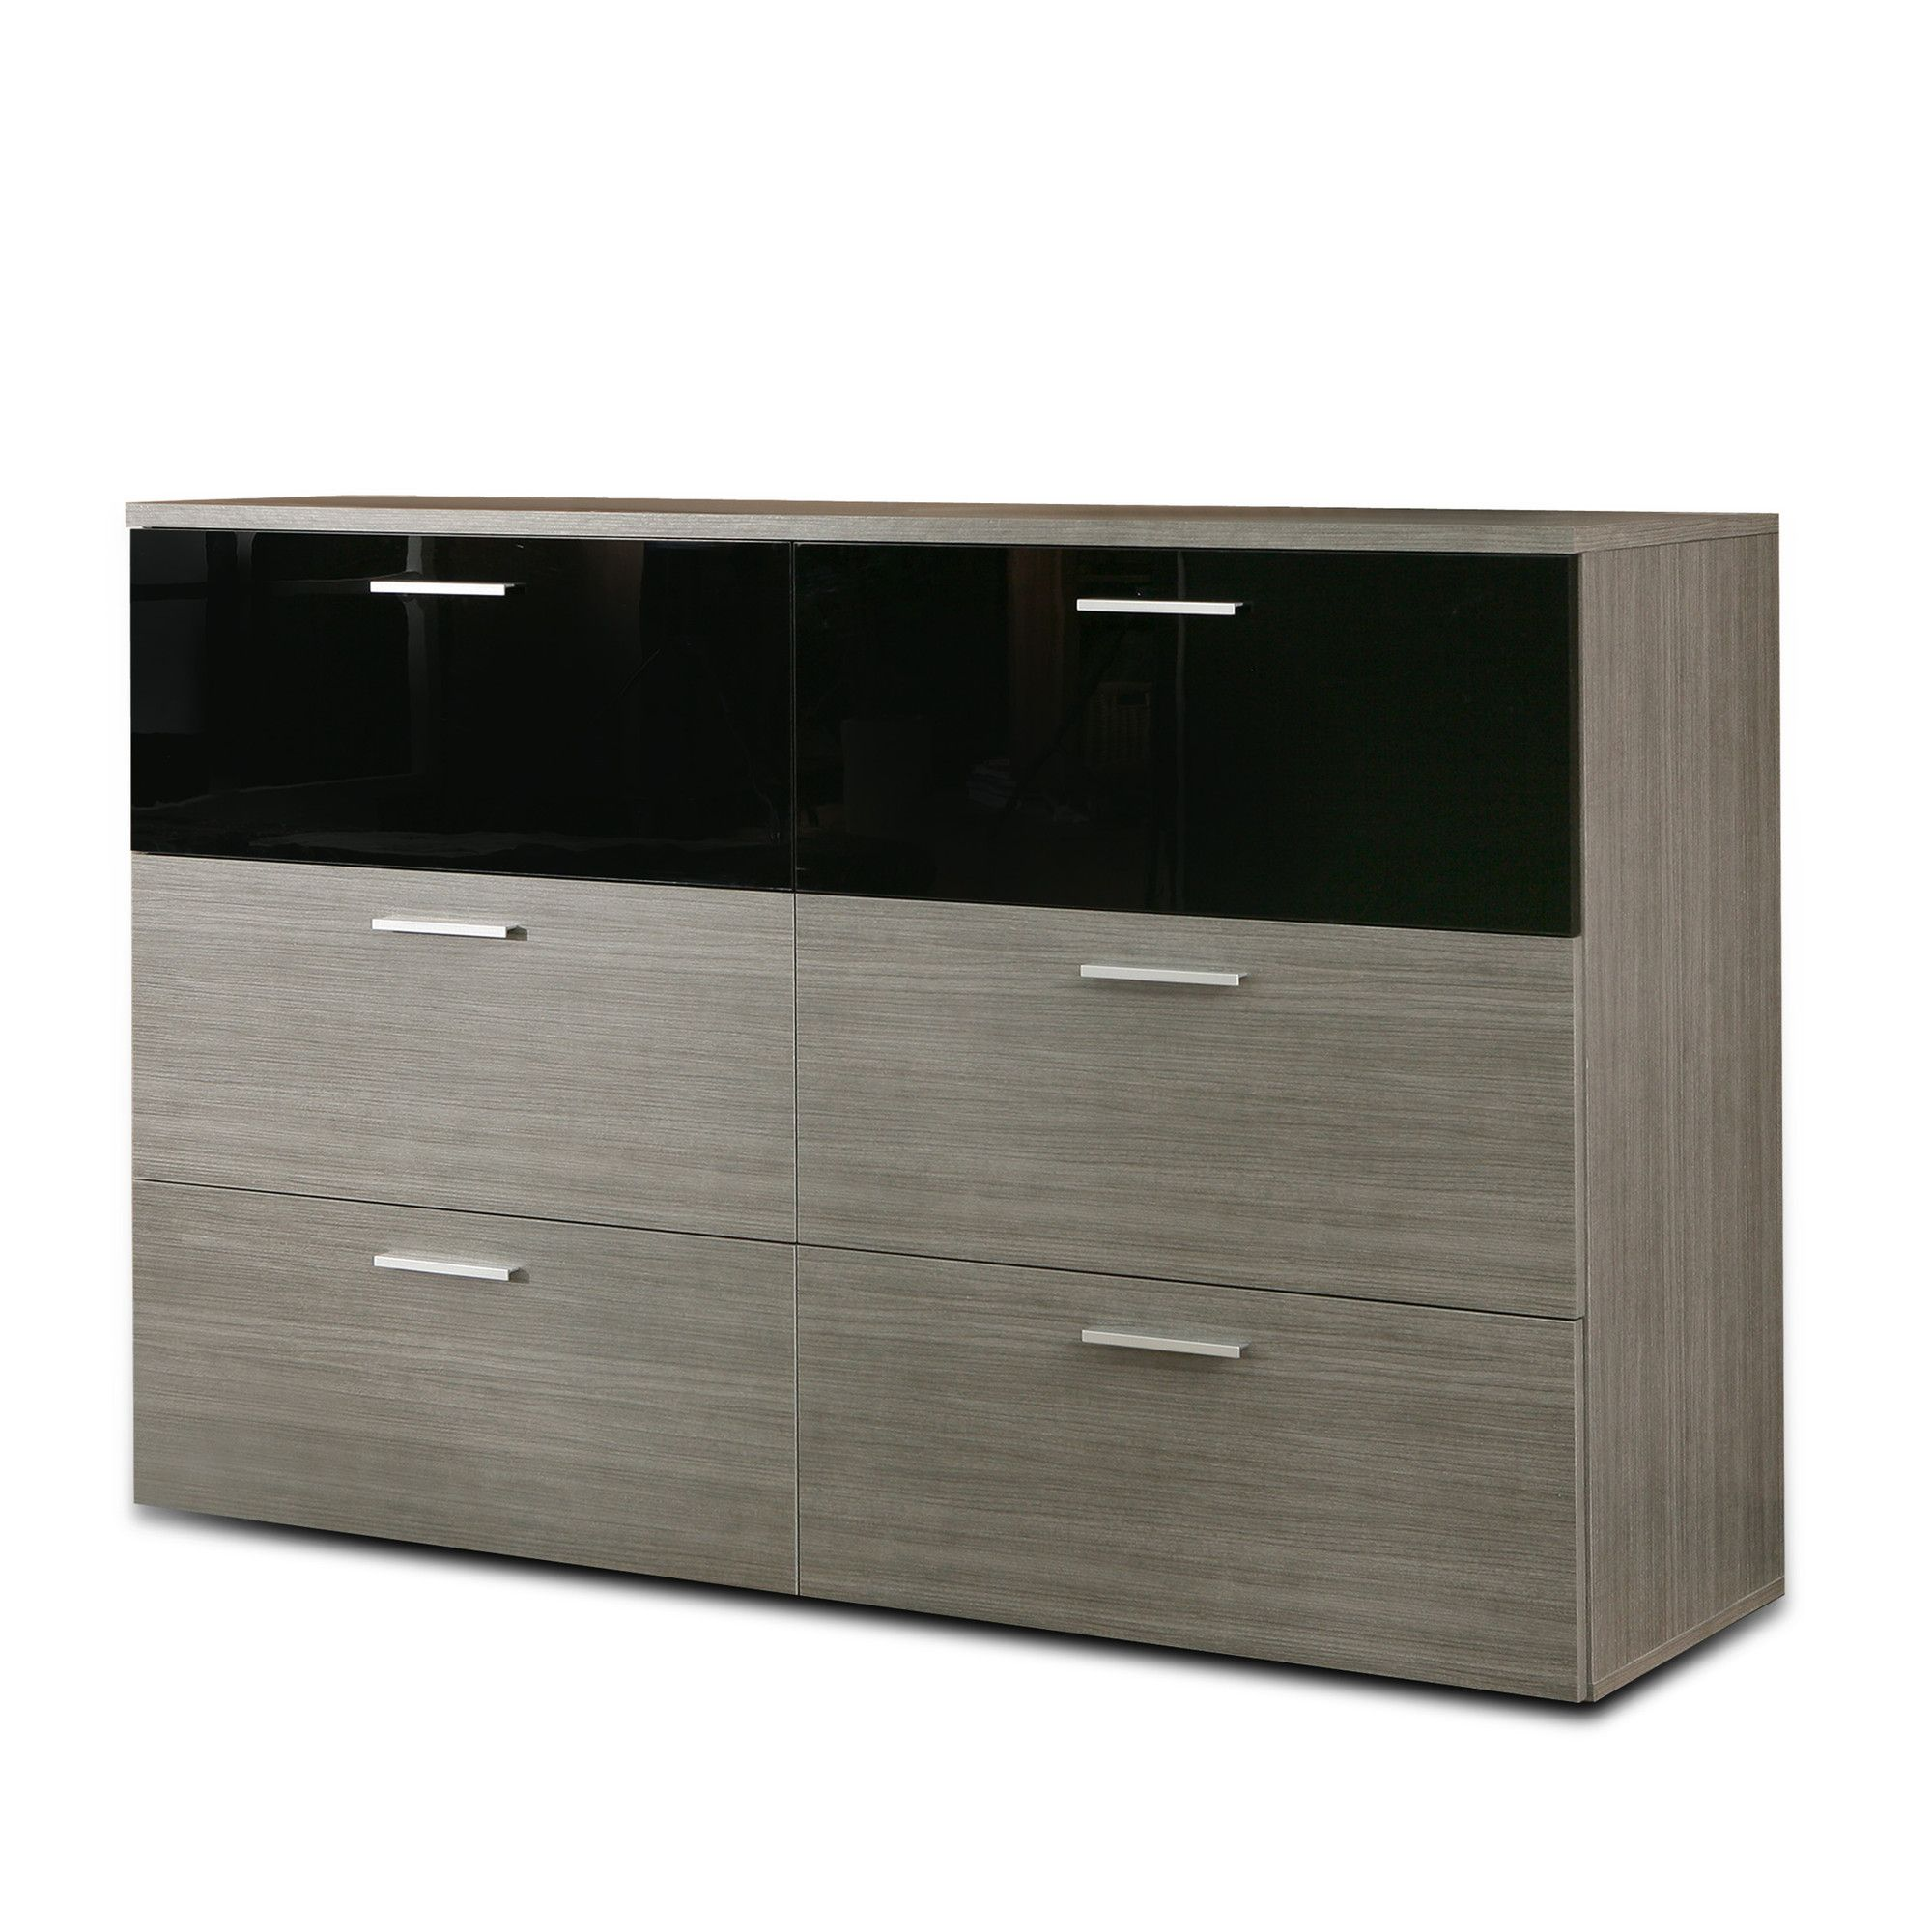 Ideal Furniture Cellini Six Drawer Chest in Grey at Tesco Direct